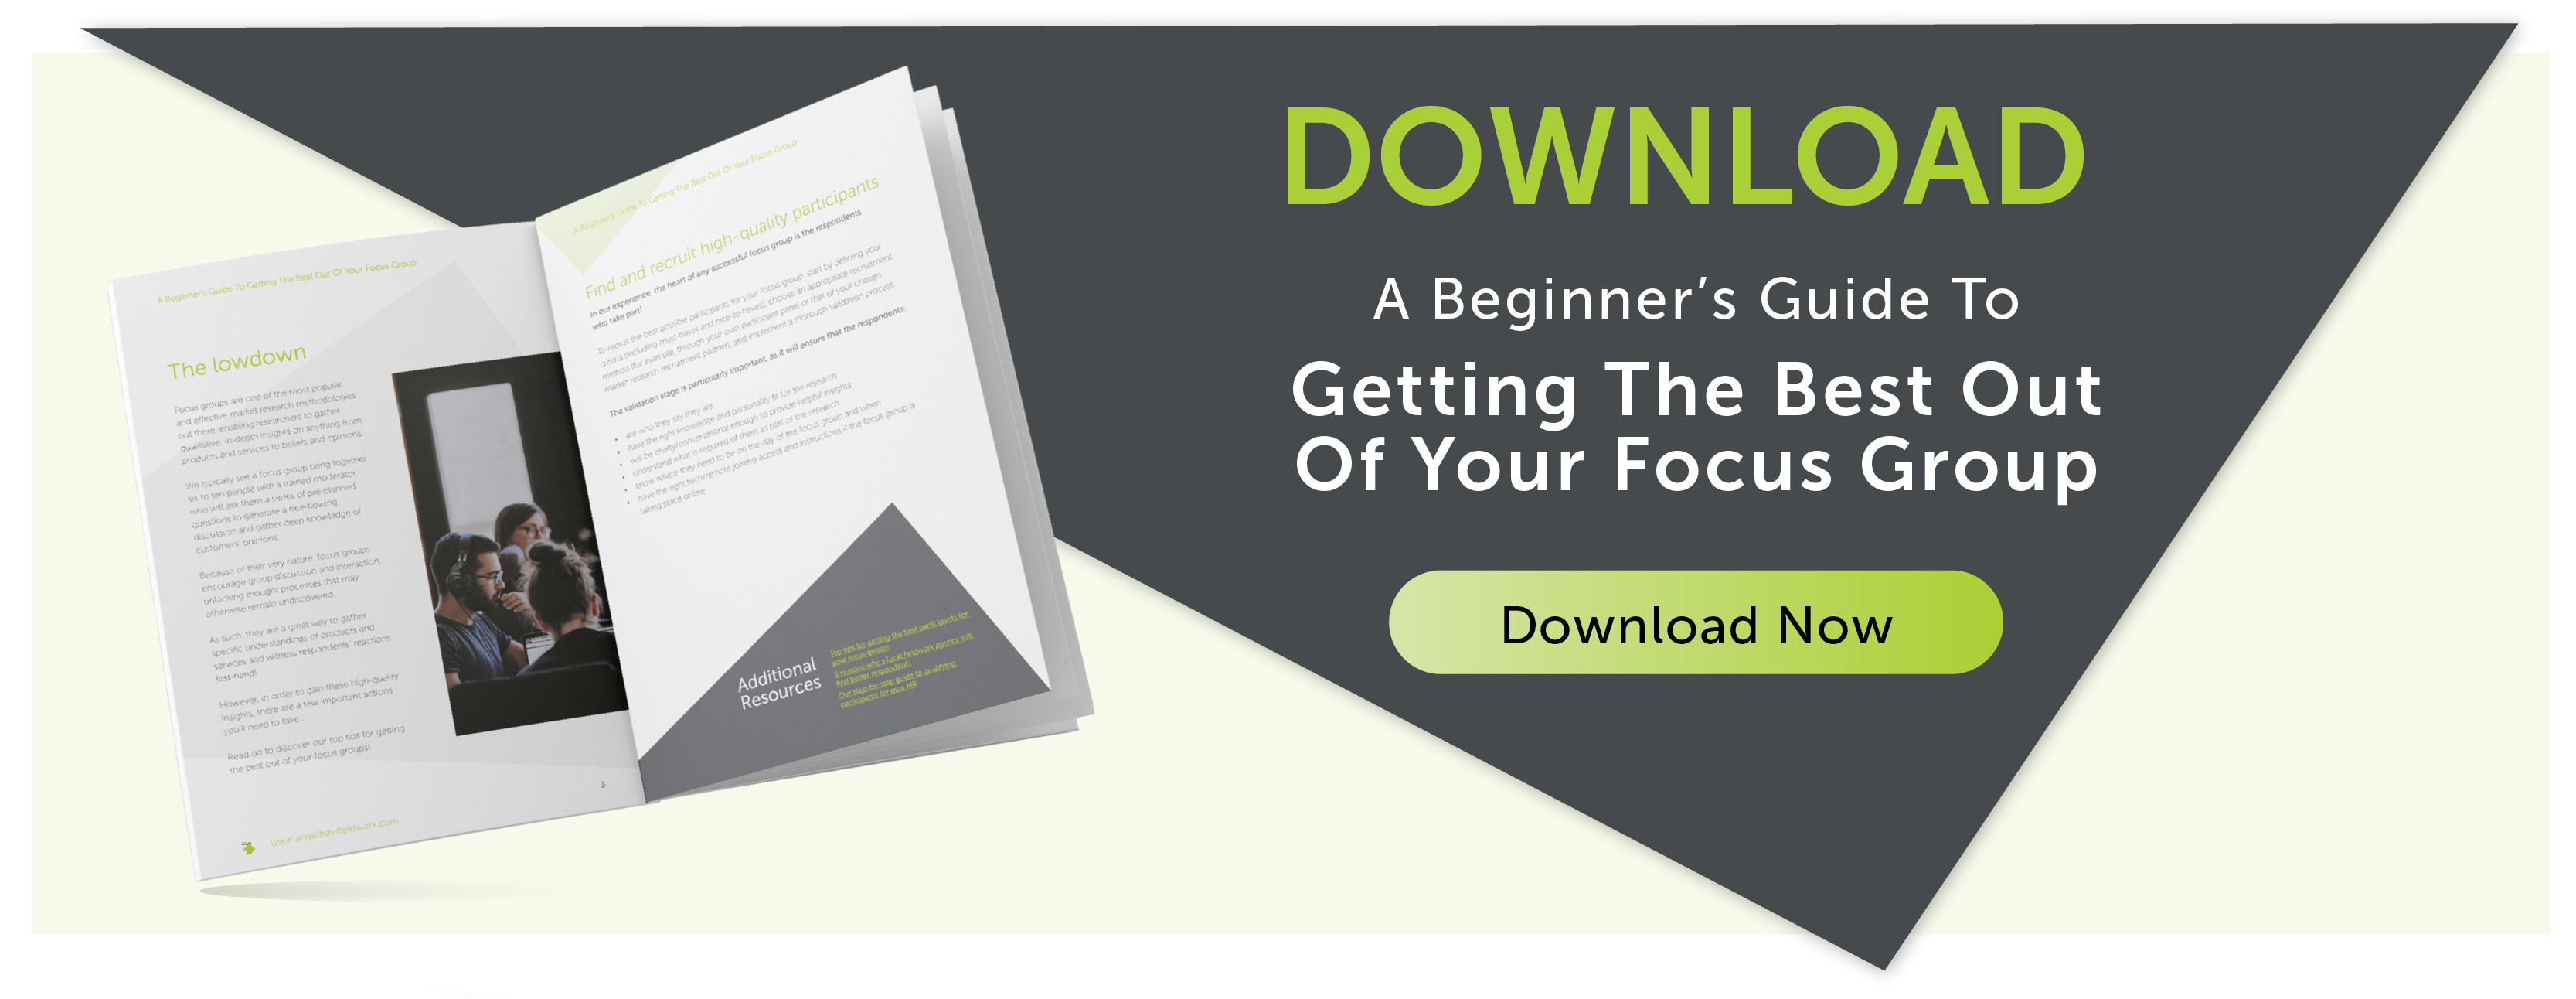 CTA Banner: A beginner's guide to getting the best out of your focus group